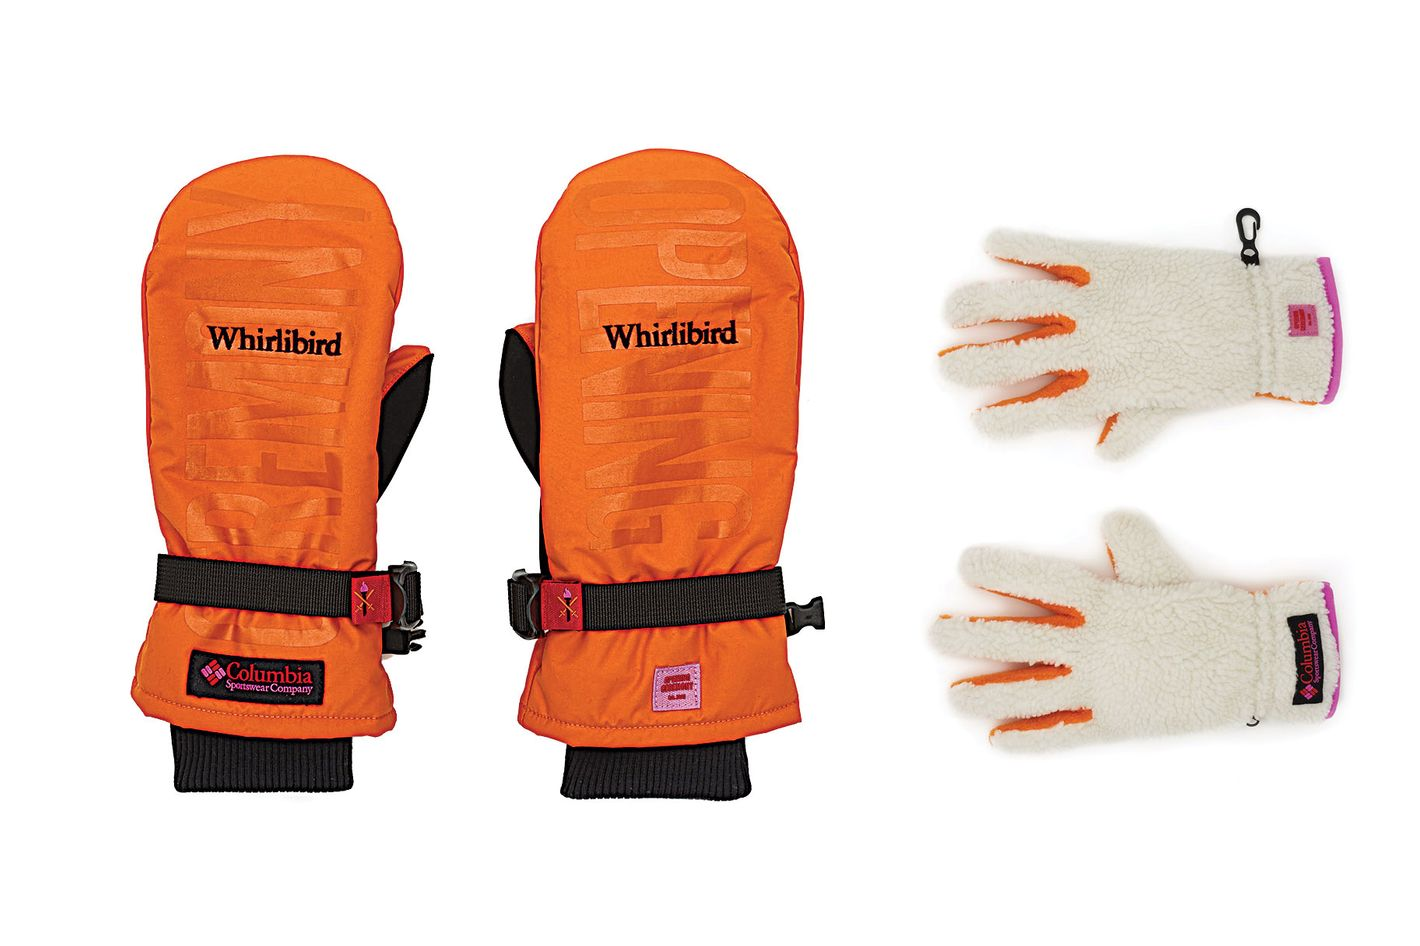 Columbia x Opening Ceremony Whirlibird Interchange Ski Glove